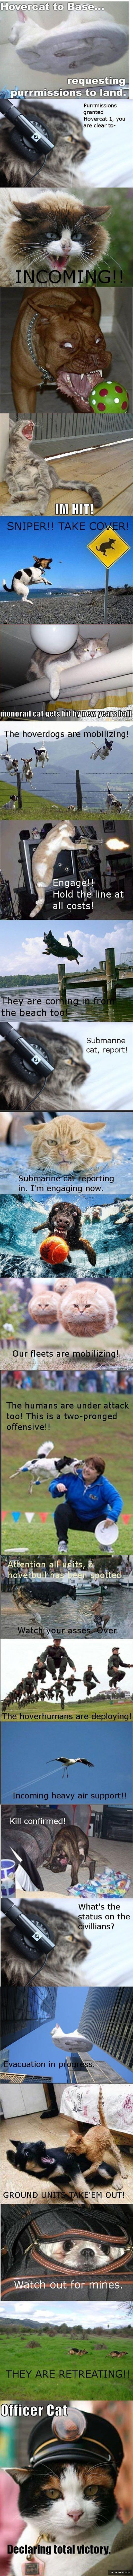 Funny Images of The Day - 17 Images